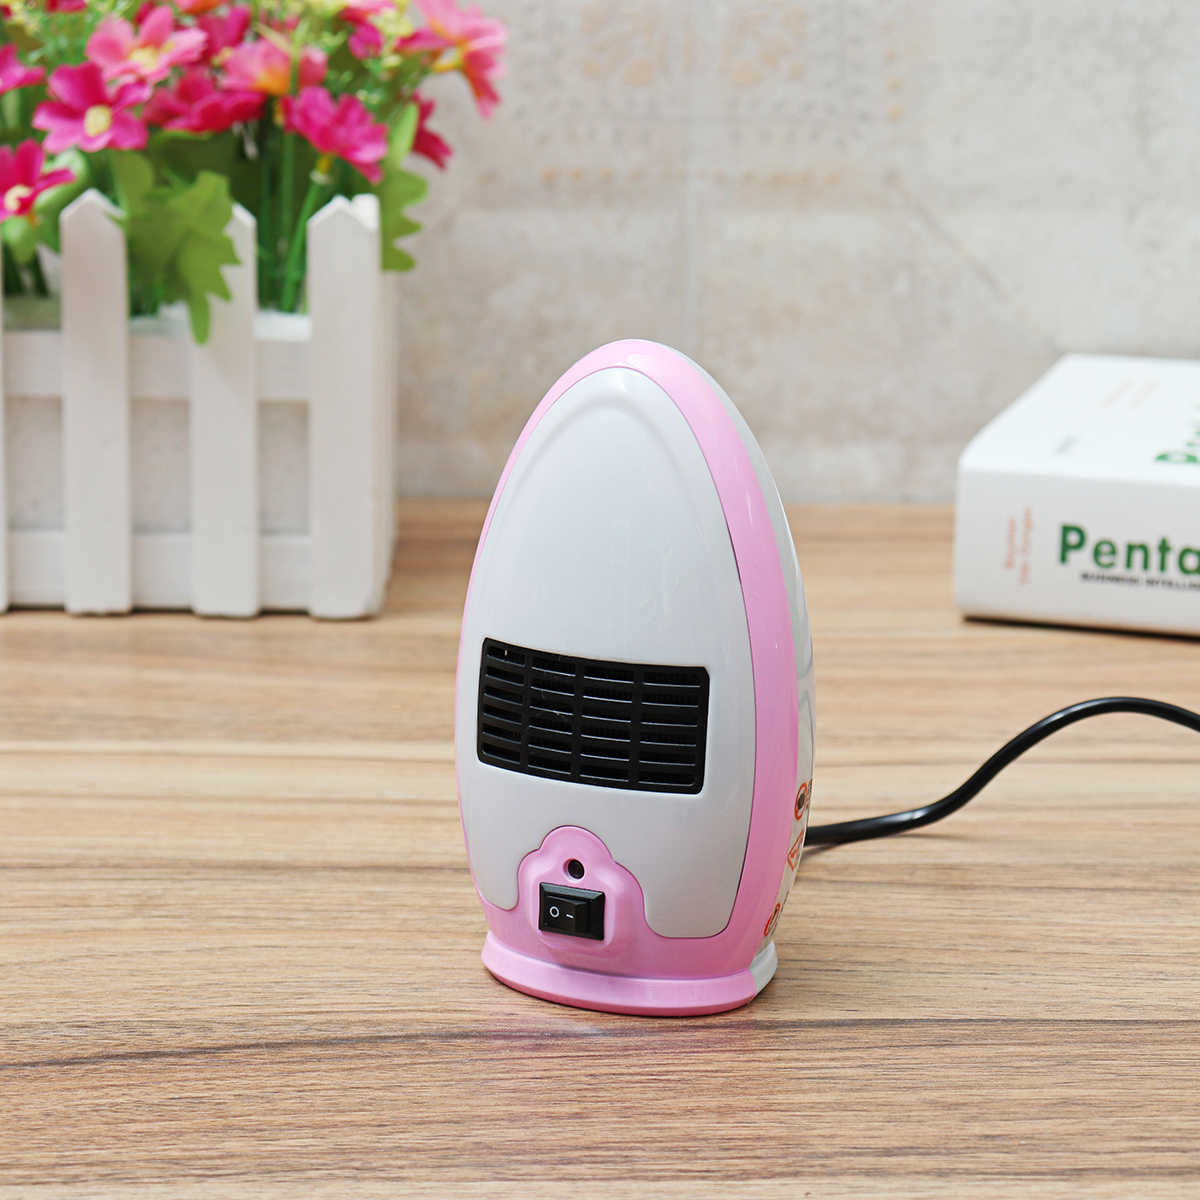 hight resolution of  200w 220v electric heater mini electric warm air heater fan stove for desktop household home office